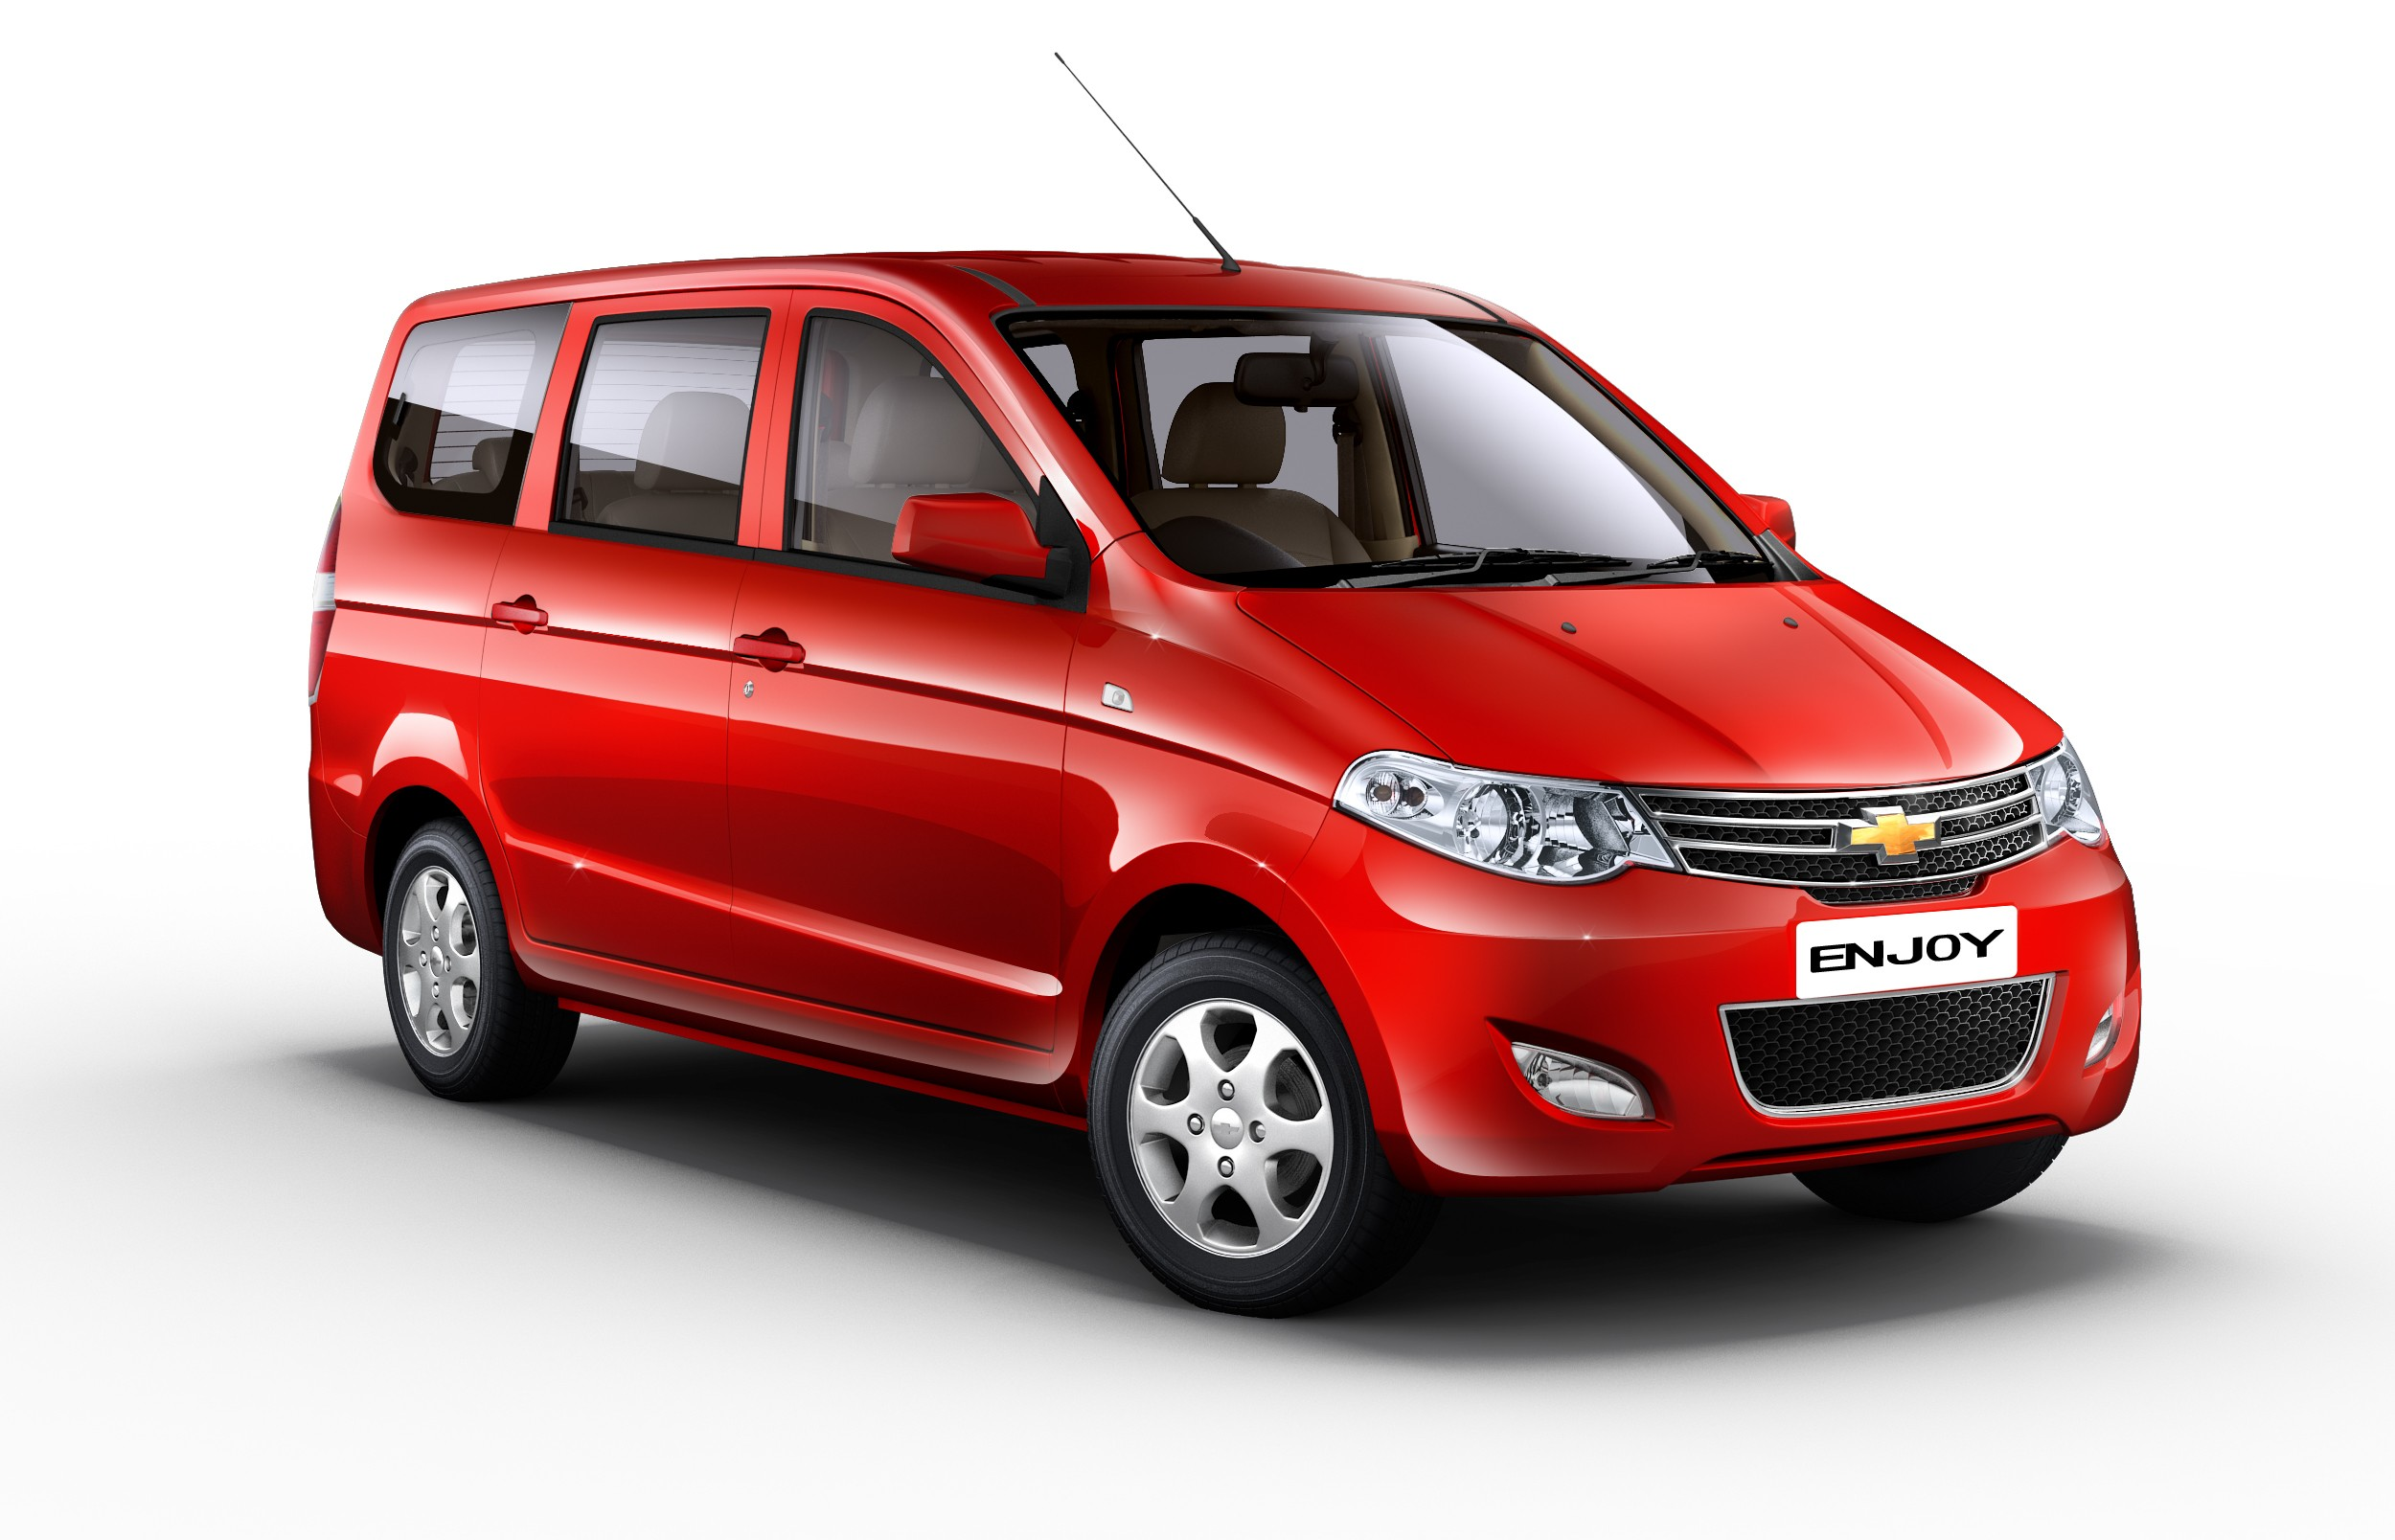 2015 Chevrolet Enjoy Is An India Bound Rwd People Carrier